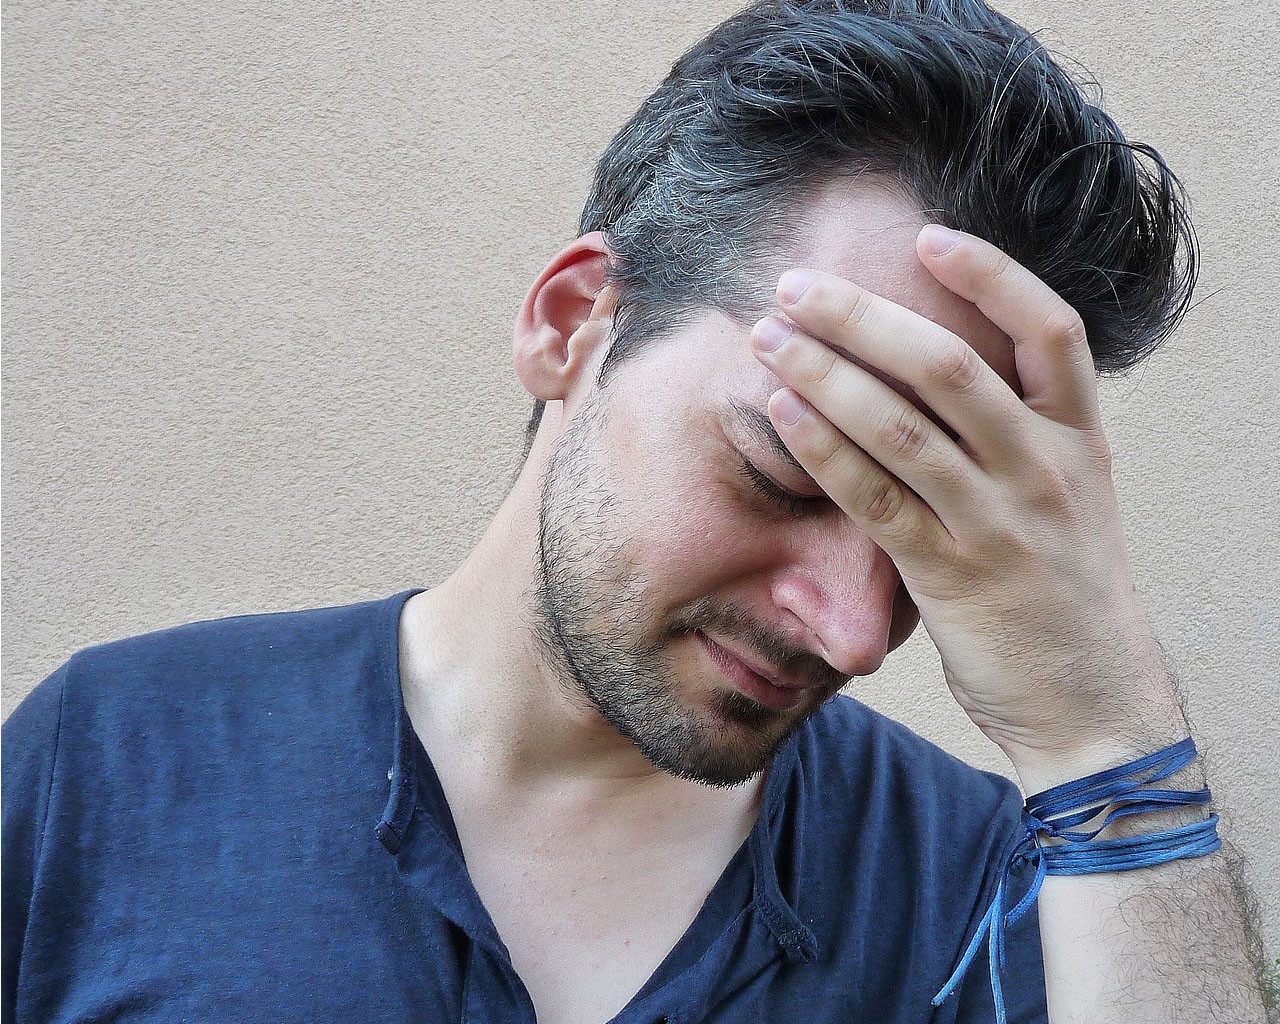 Chronic Migraine Headaches Can Prevent You From Working